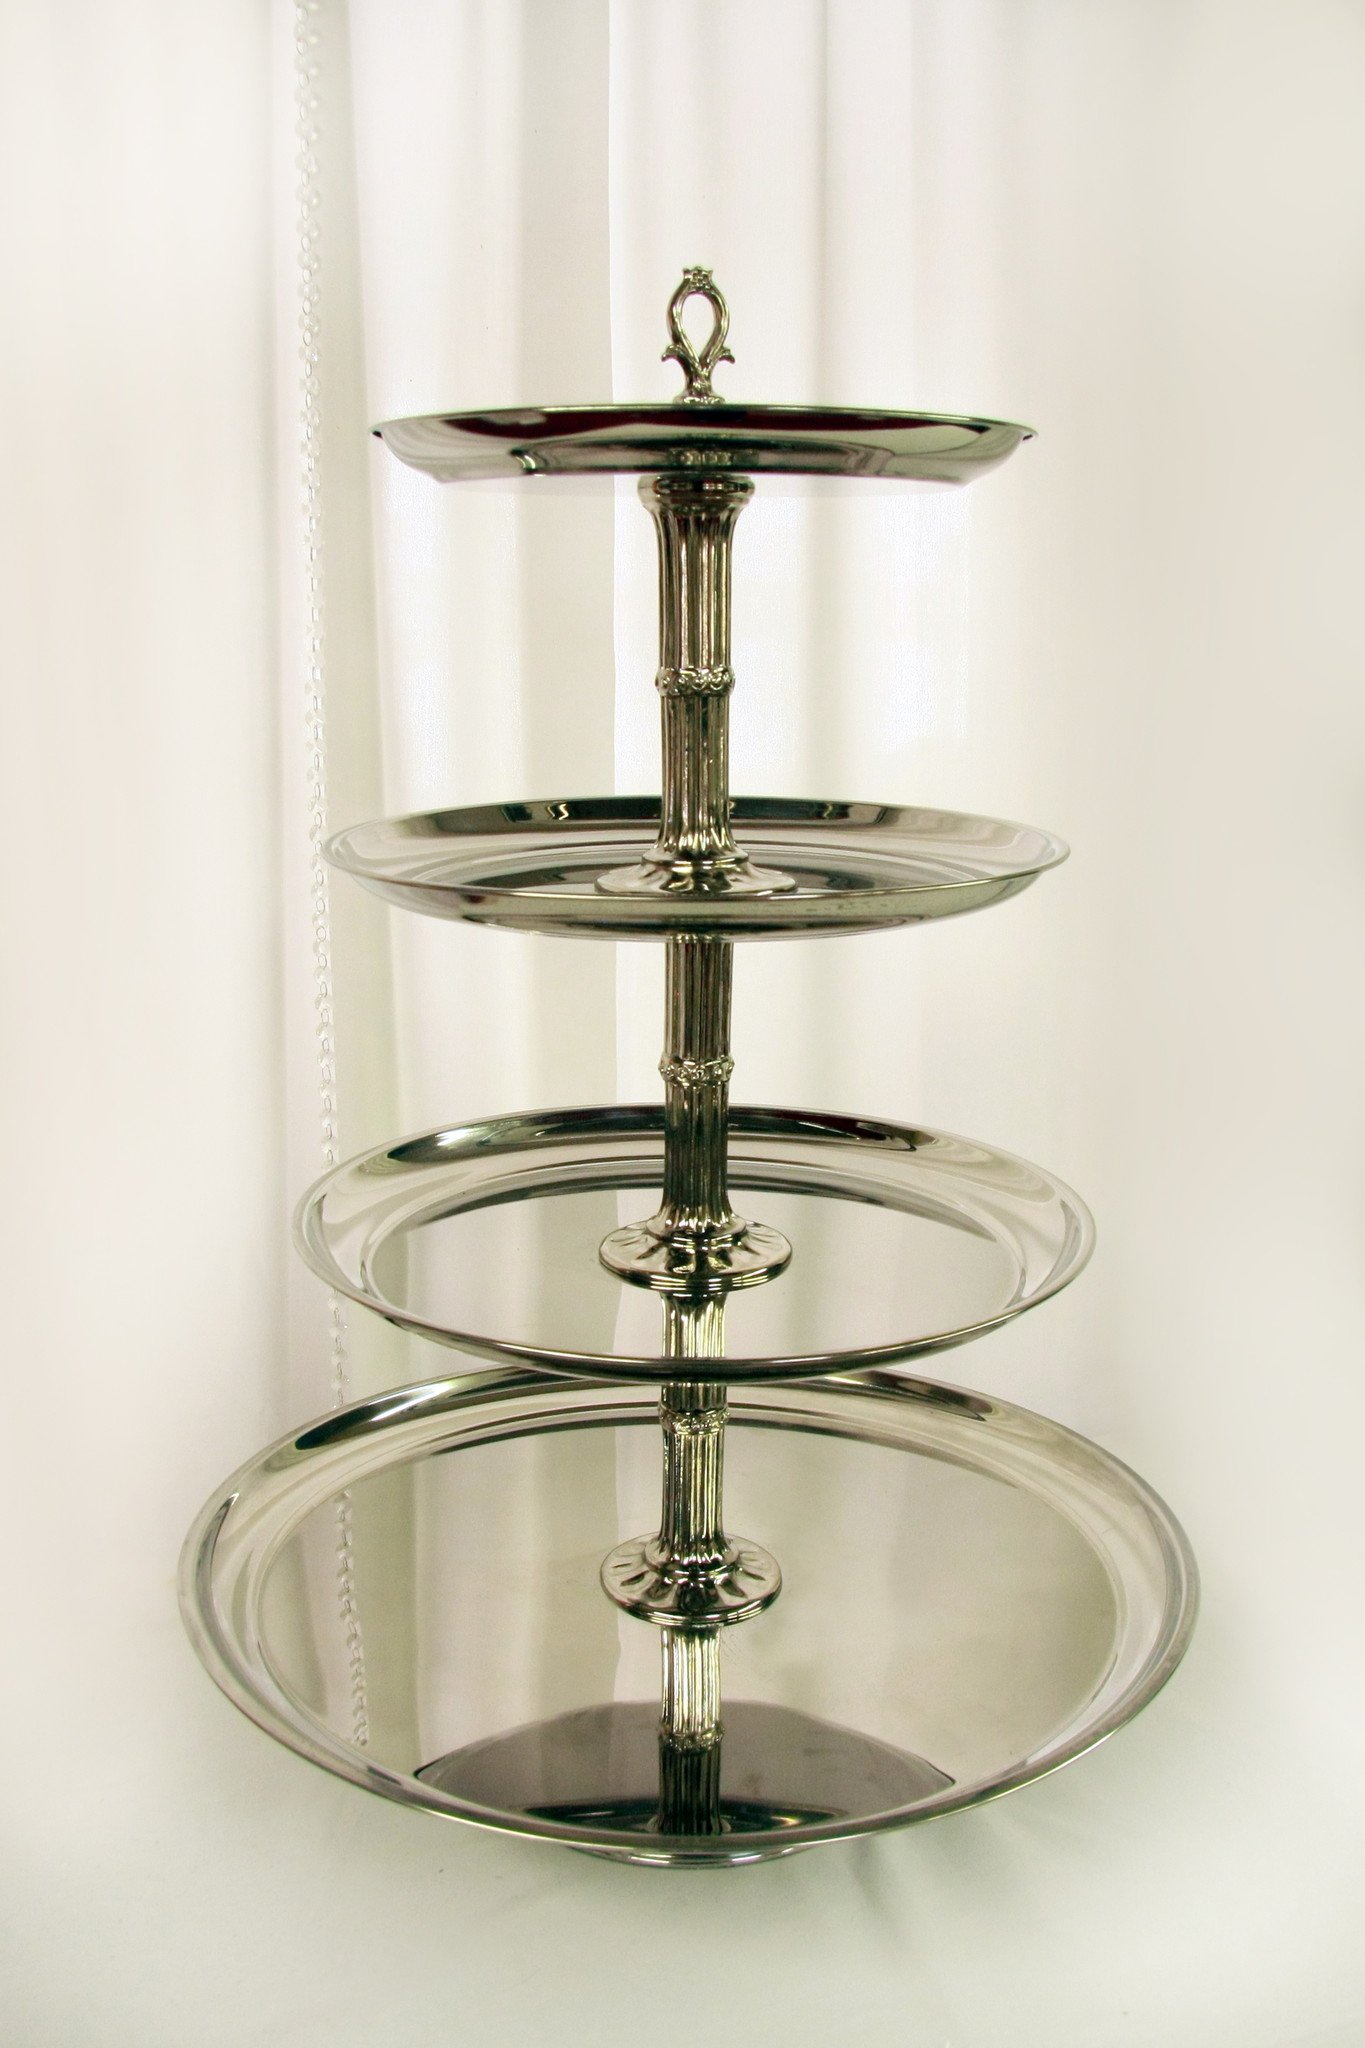 4 Tier Shiny Silver Cupcake Stand Image